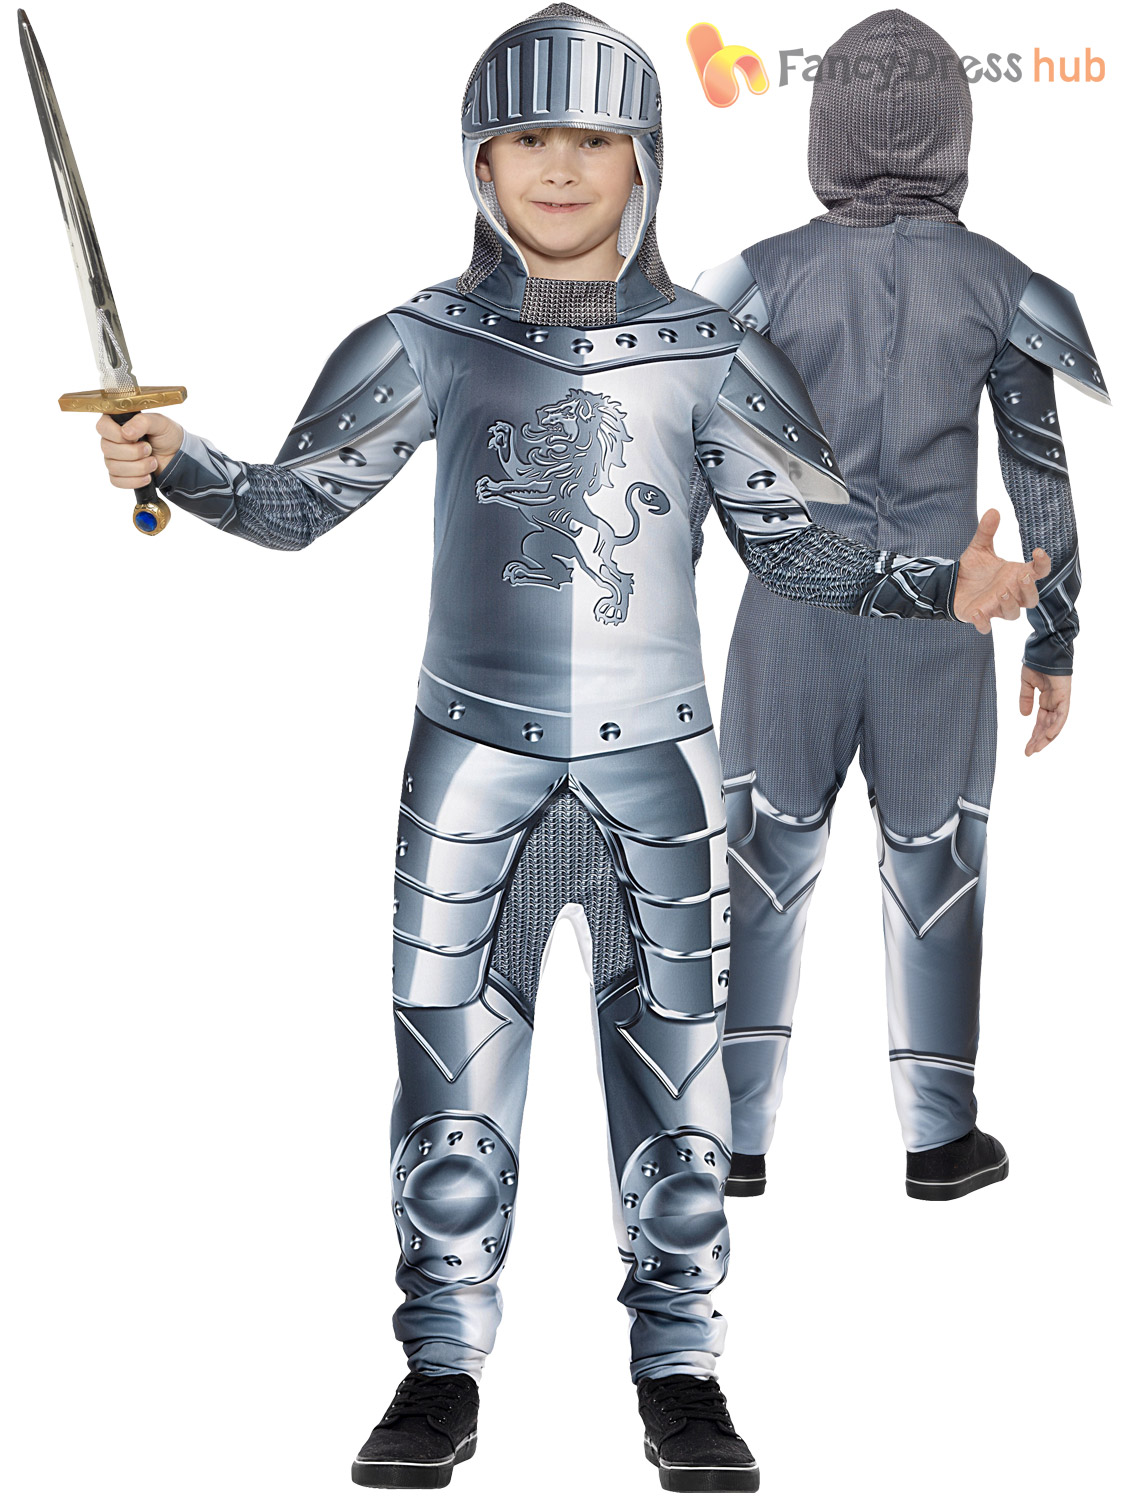 Boys-Medieval-Knight-Costume-Childs-Suit-of-Armour-Fancy-Dress-Book-Day thumbnail 4